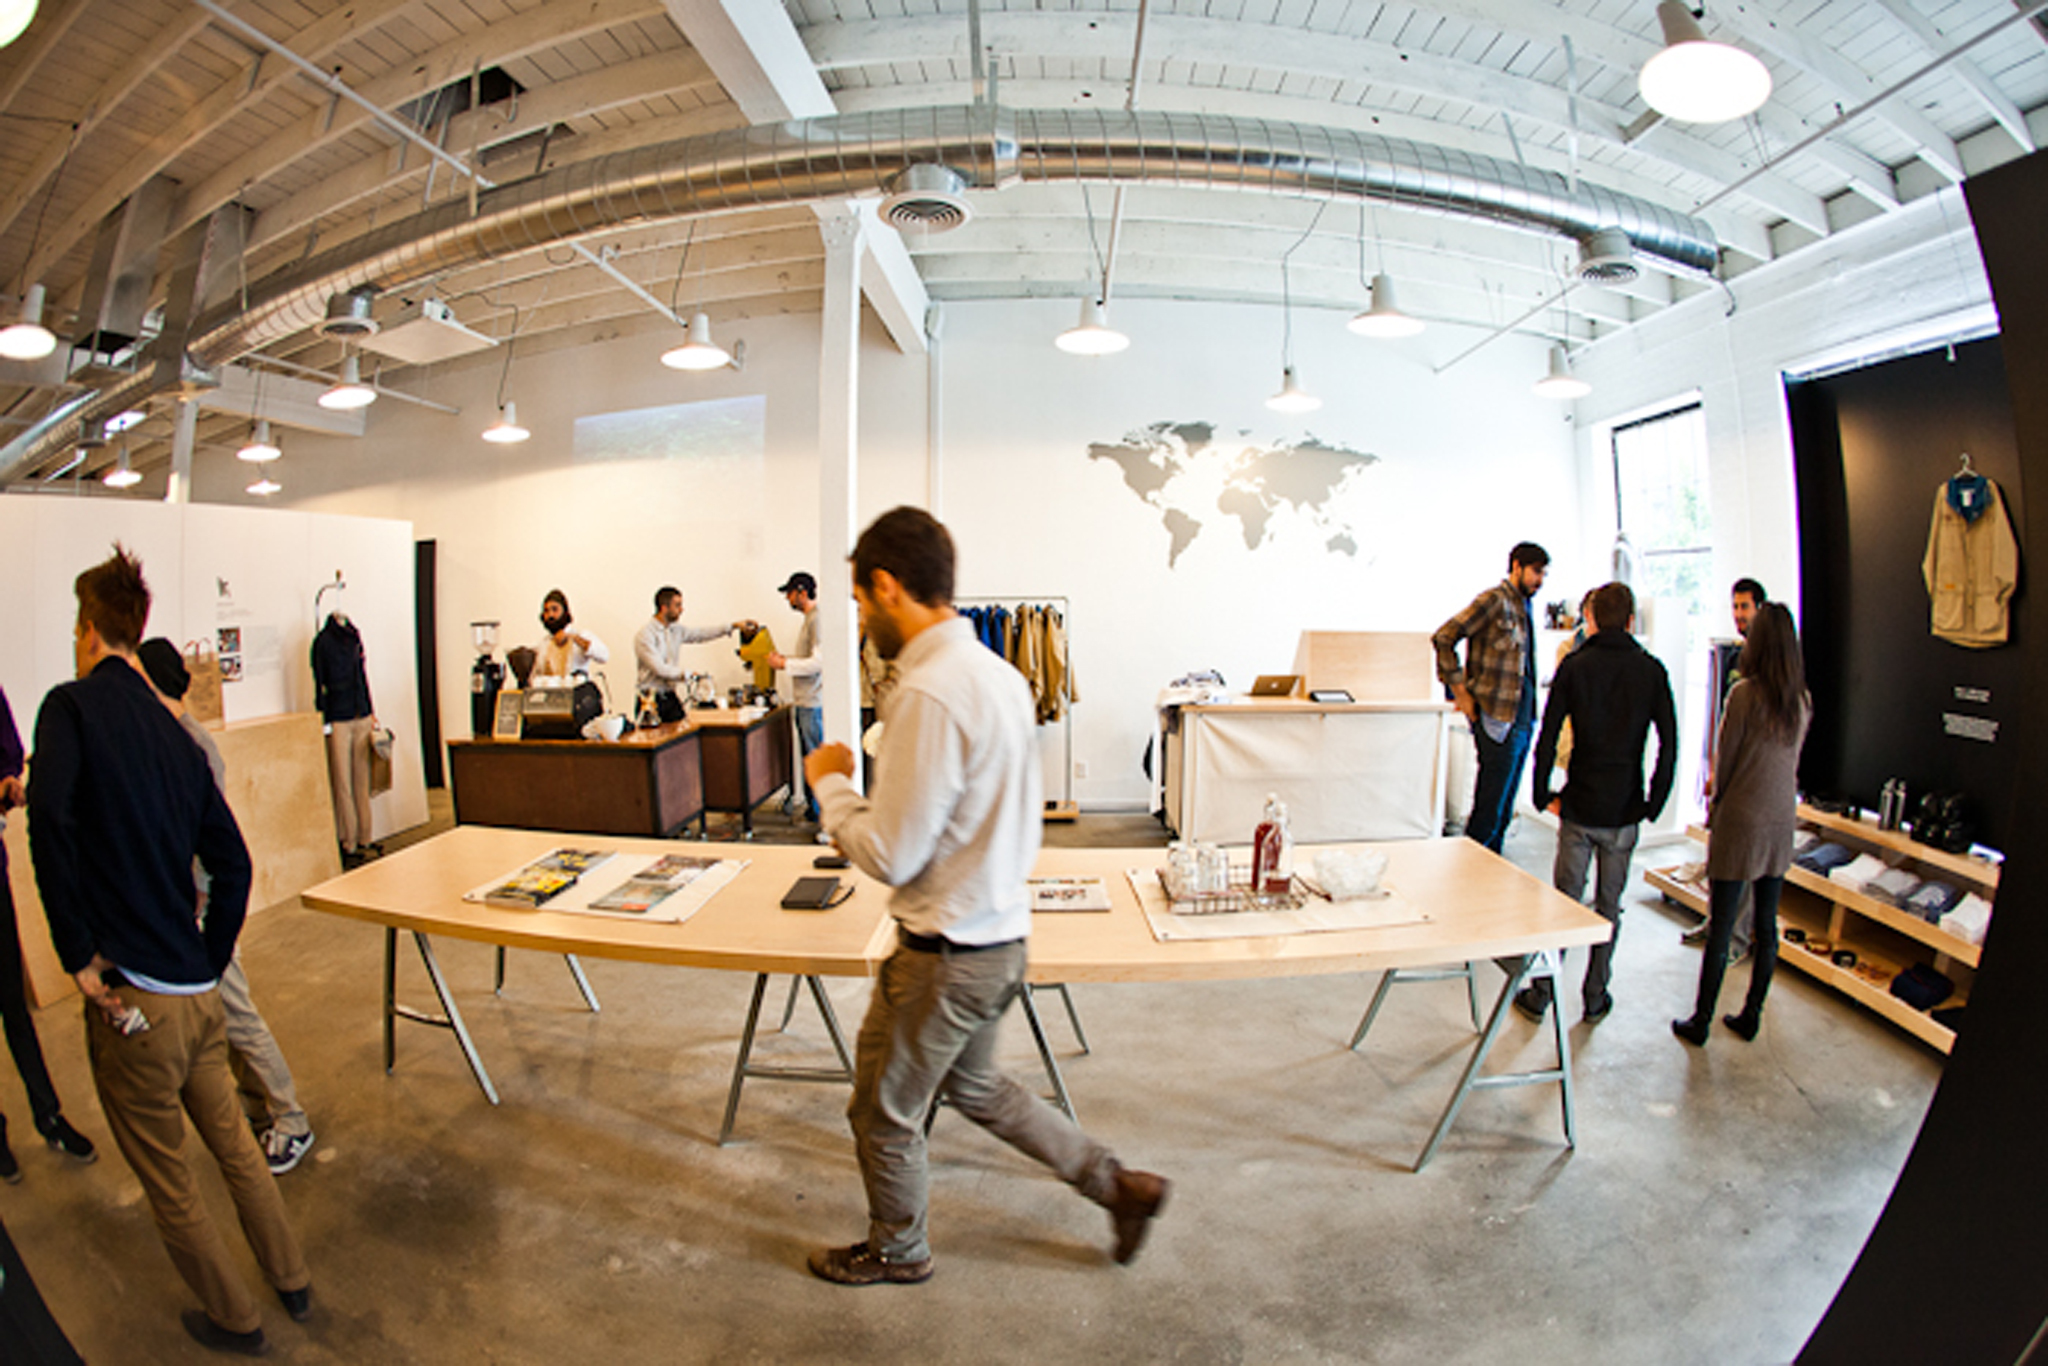 Apolis Common Gallery